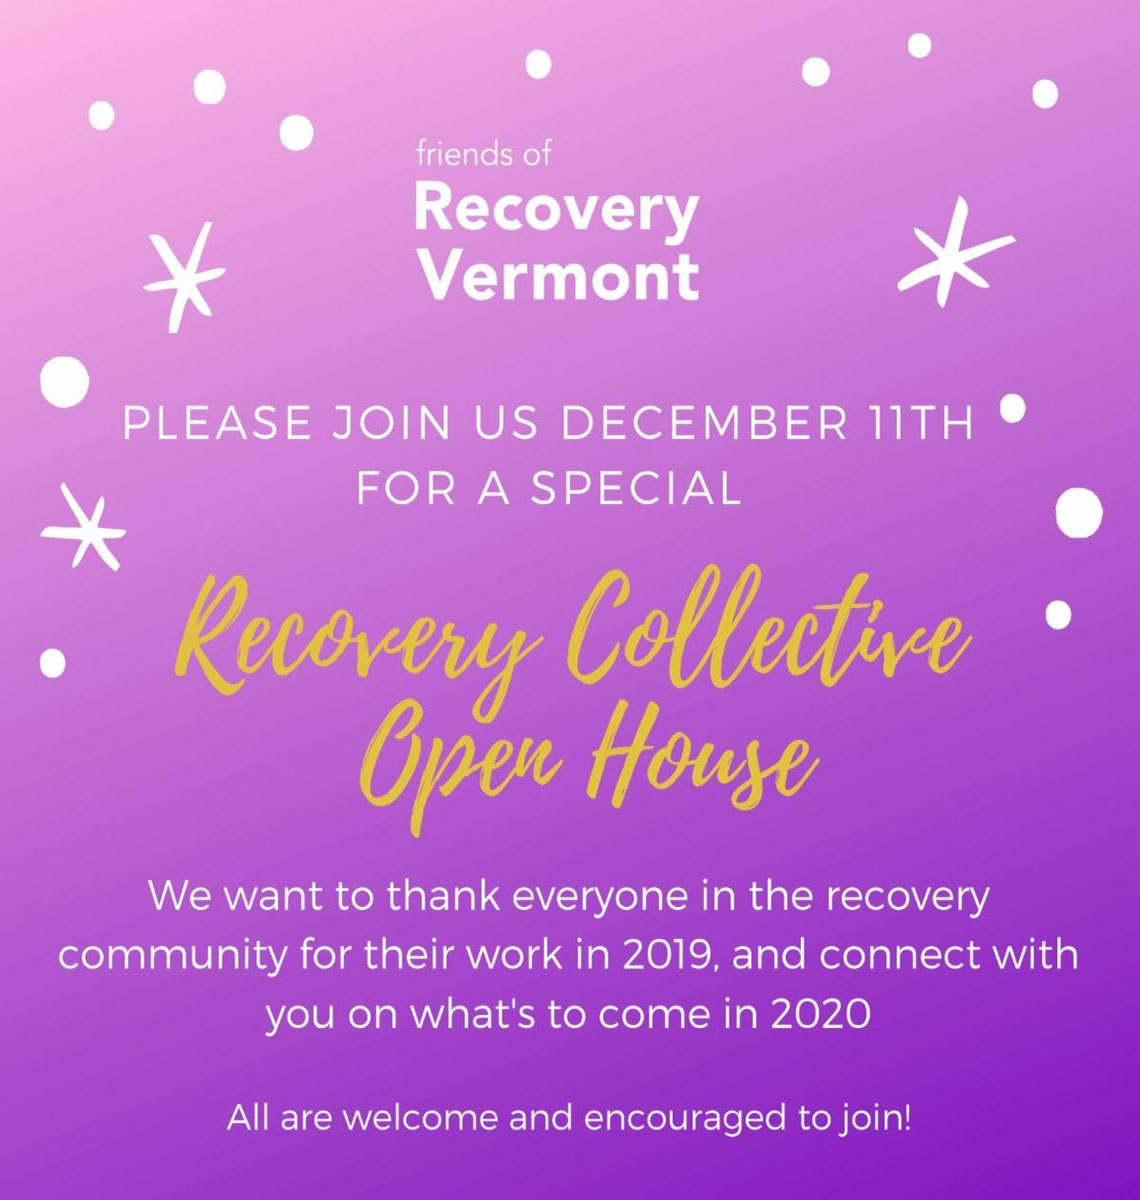 Friends of Recovery Vermont invites you to Recovery Collective Open House!